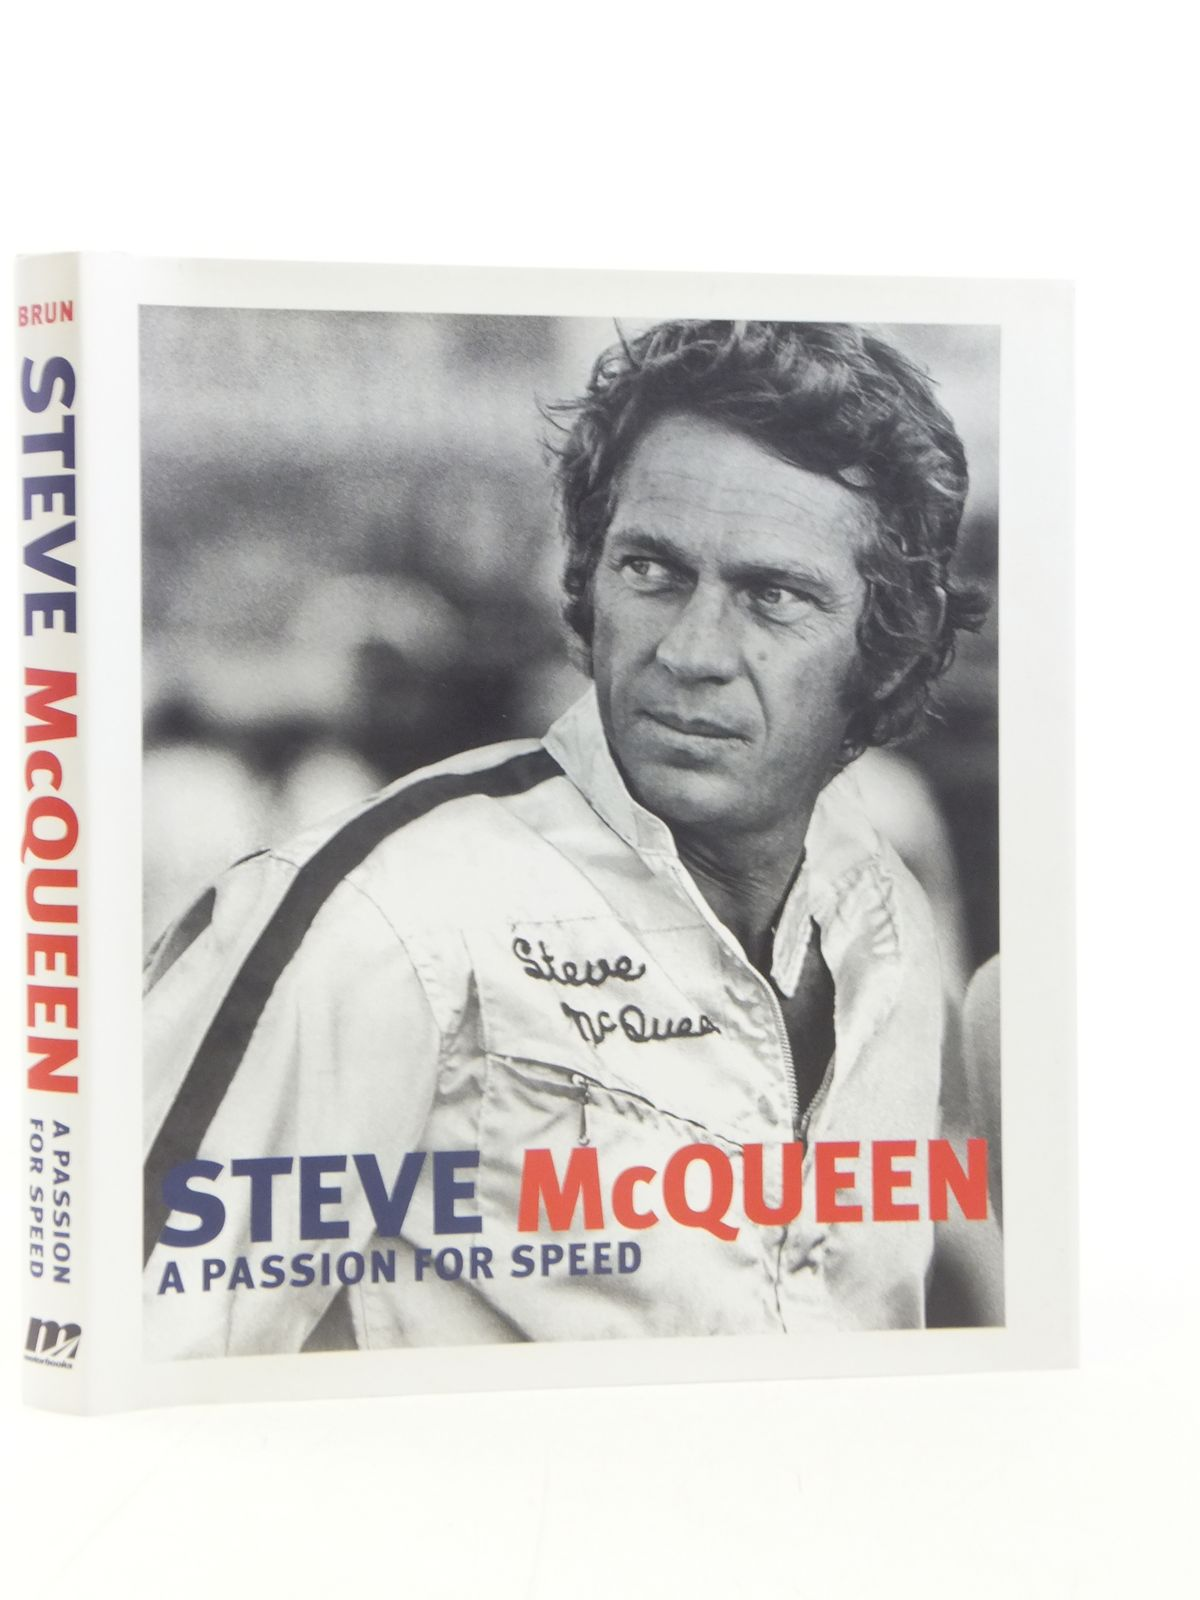 Photo of STEVE MCQUEEN A PASSION FOR SPEED written by Brun, Frederic published by Mbi Publishing, Motorbooks (STOCK CODE: 1606491)  for sale by Stella & Rose's Books